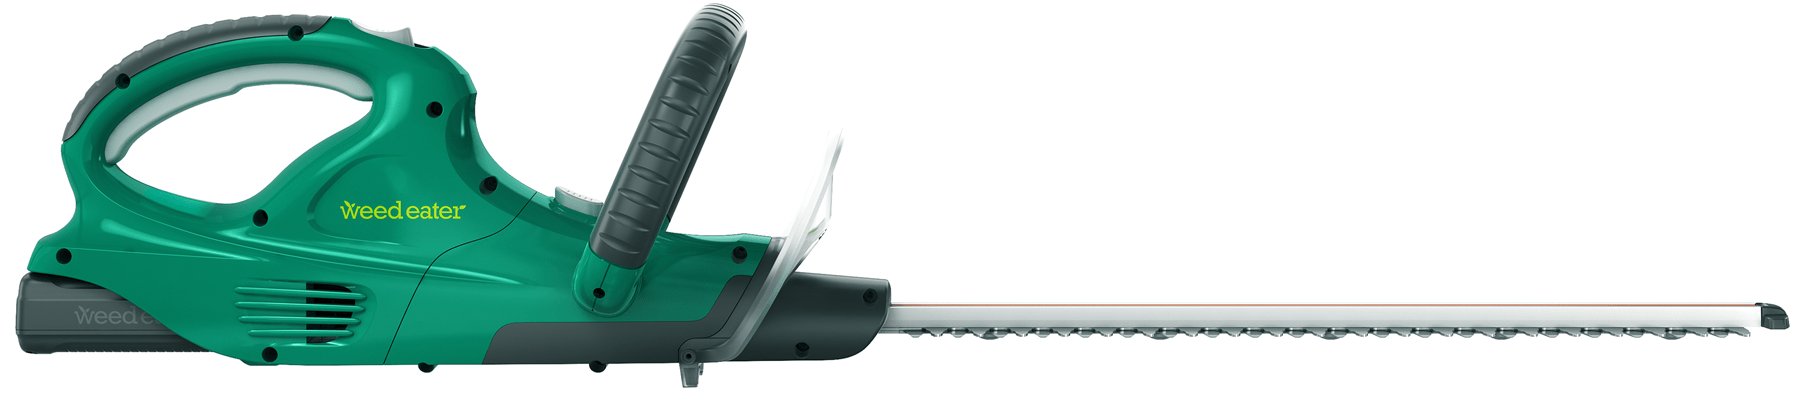 HT160i 20V Mini-Tools Hedge Trimmer